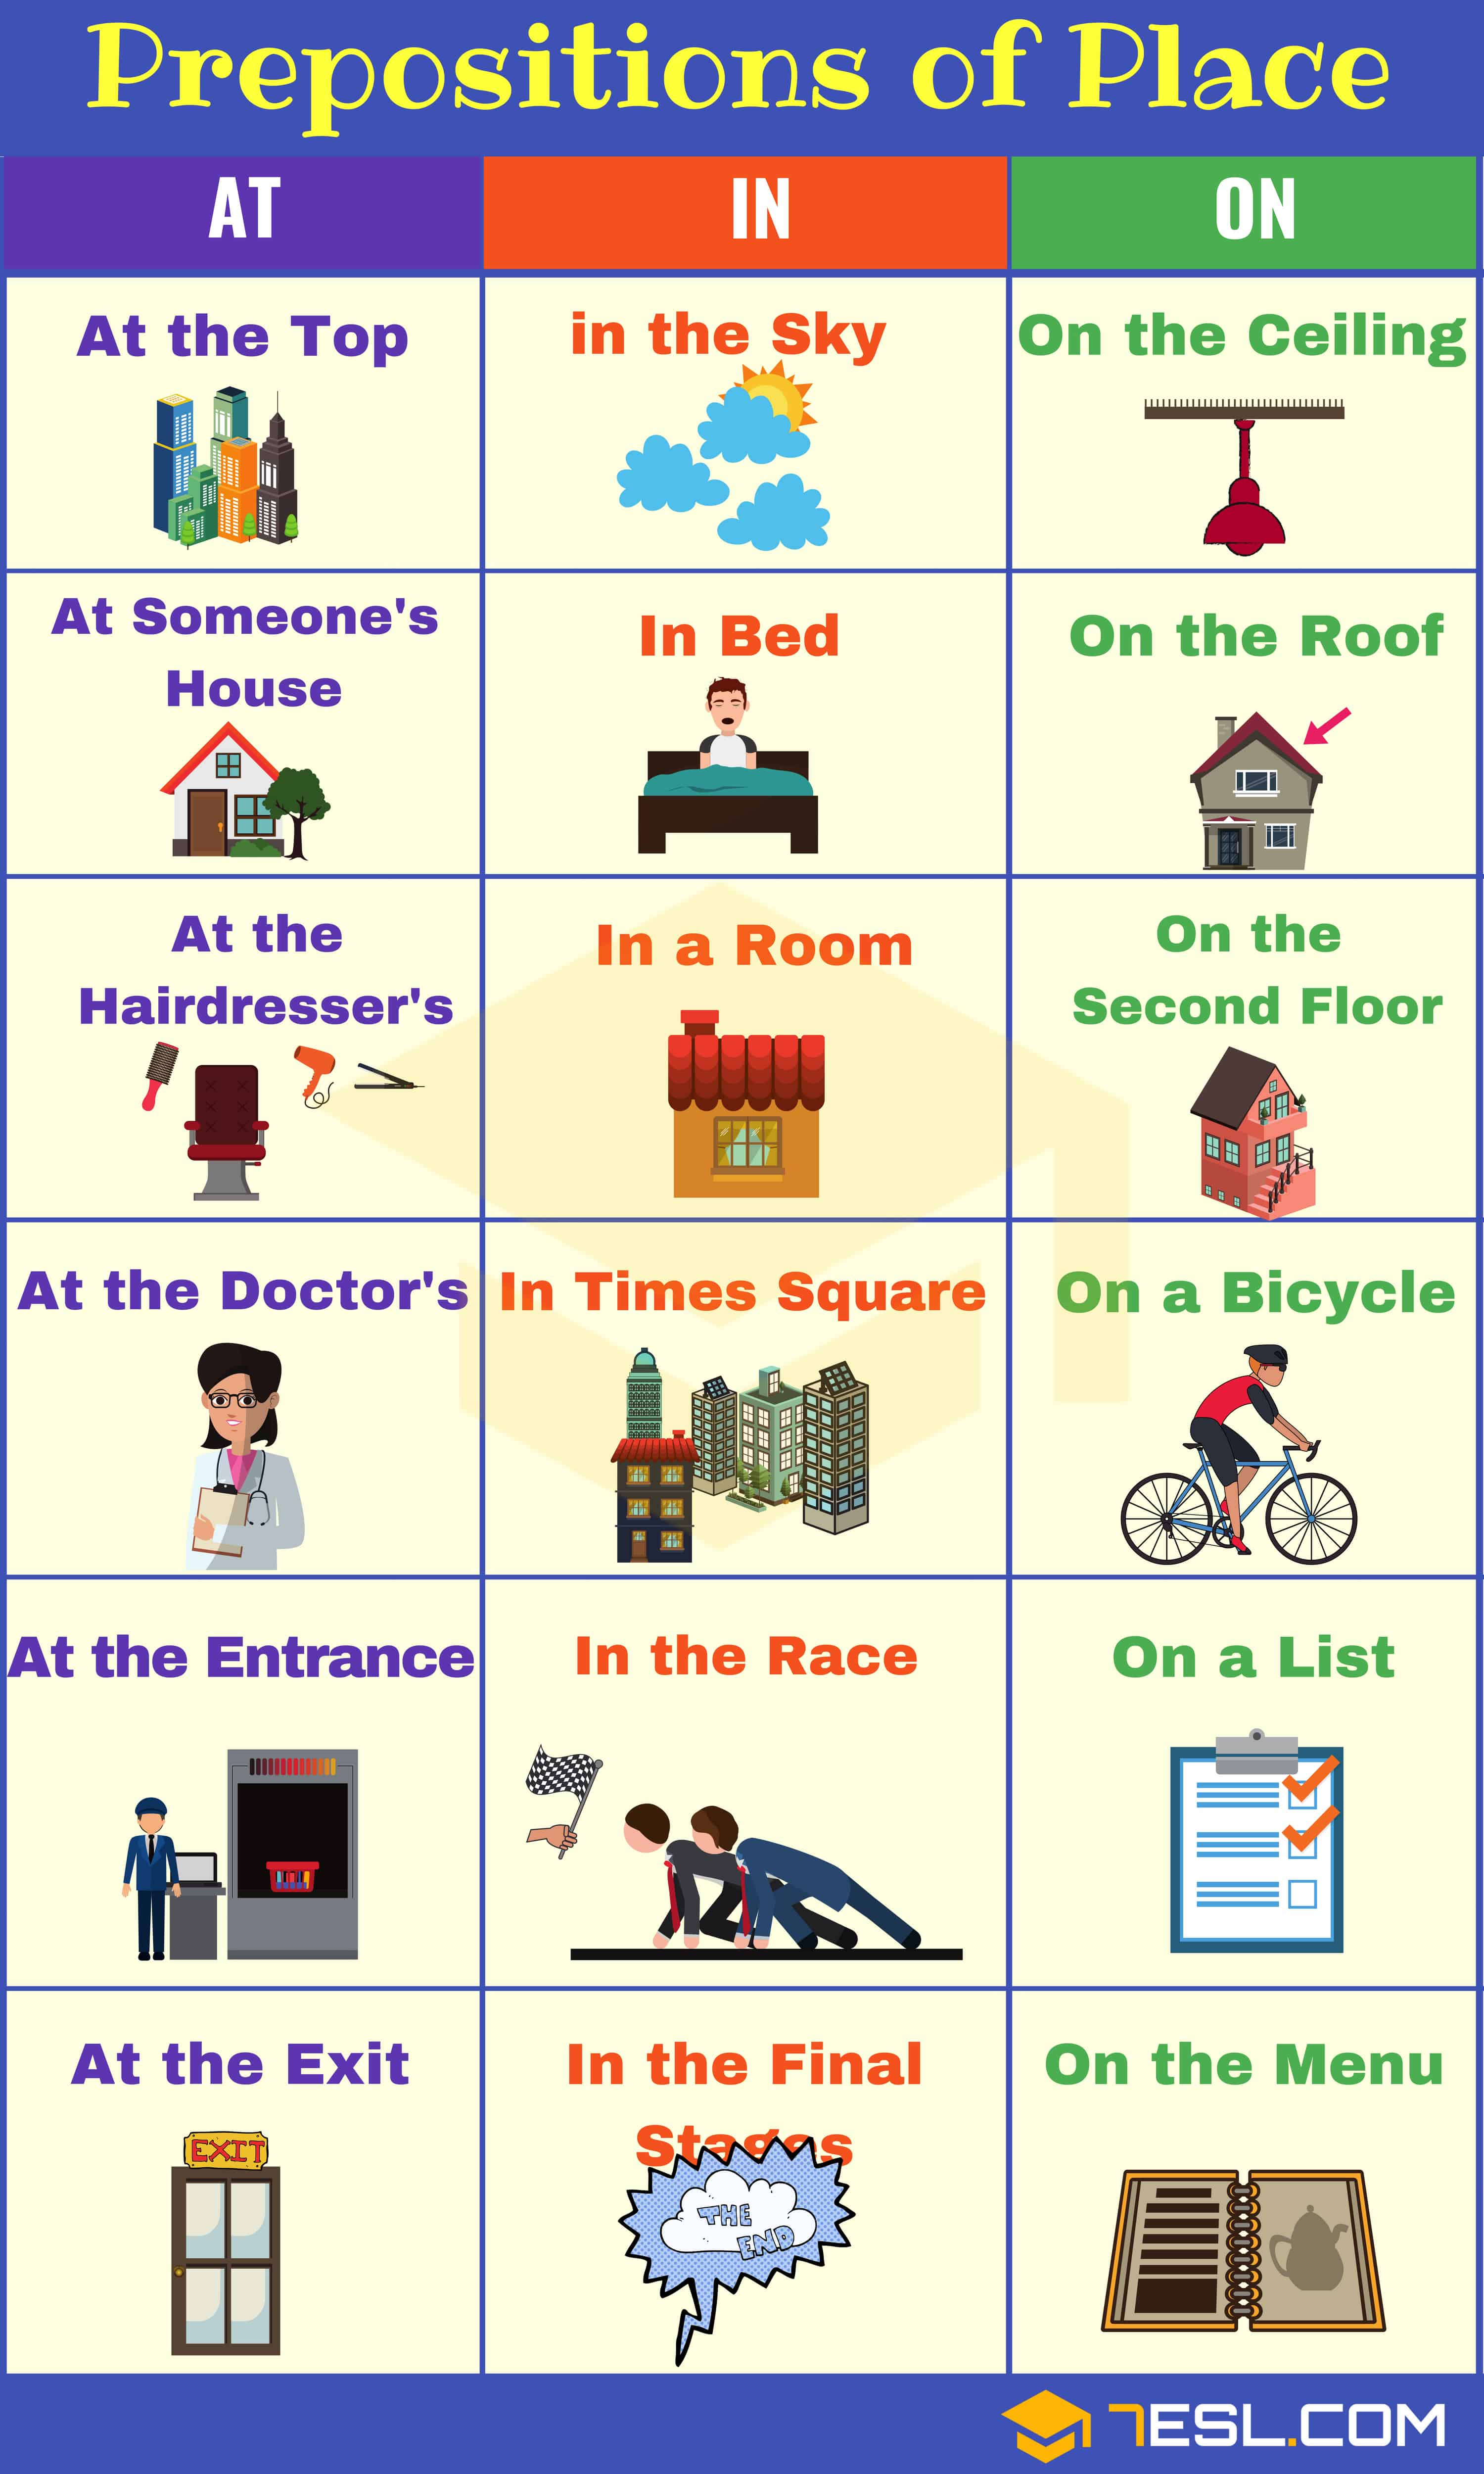 Prepositions of Place AT IN ON